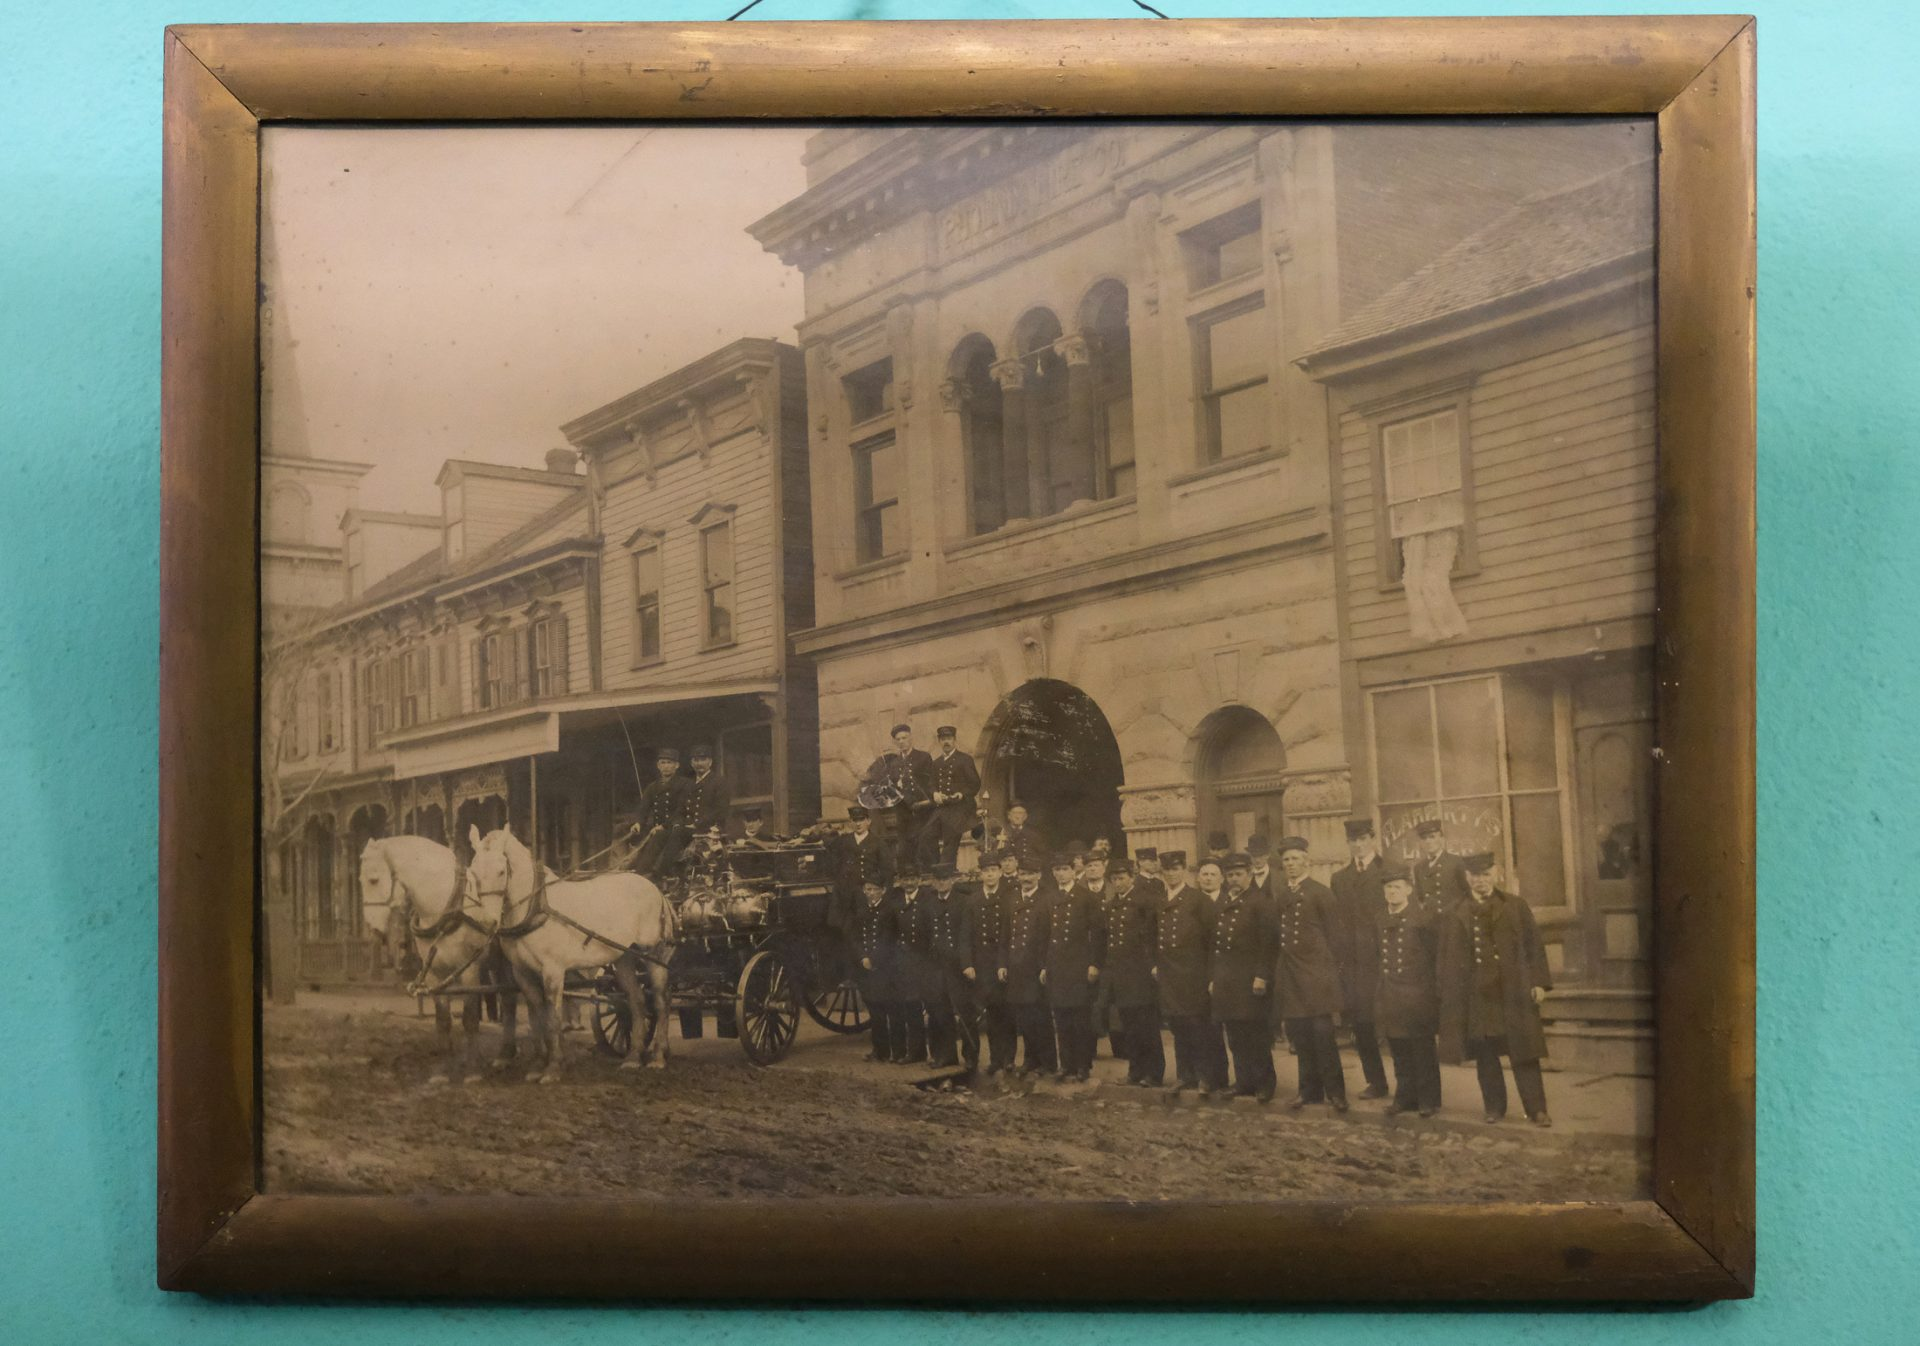 A photo of the company of firefighters taken in the 19th century is displayed Jan. 16, 2020, at Phoenix Fire Company No. 2 in Shenandoah, Pennsylvania.